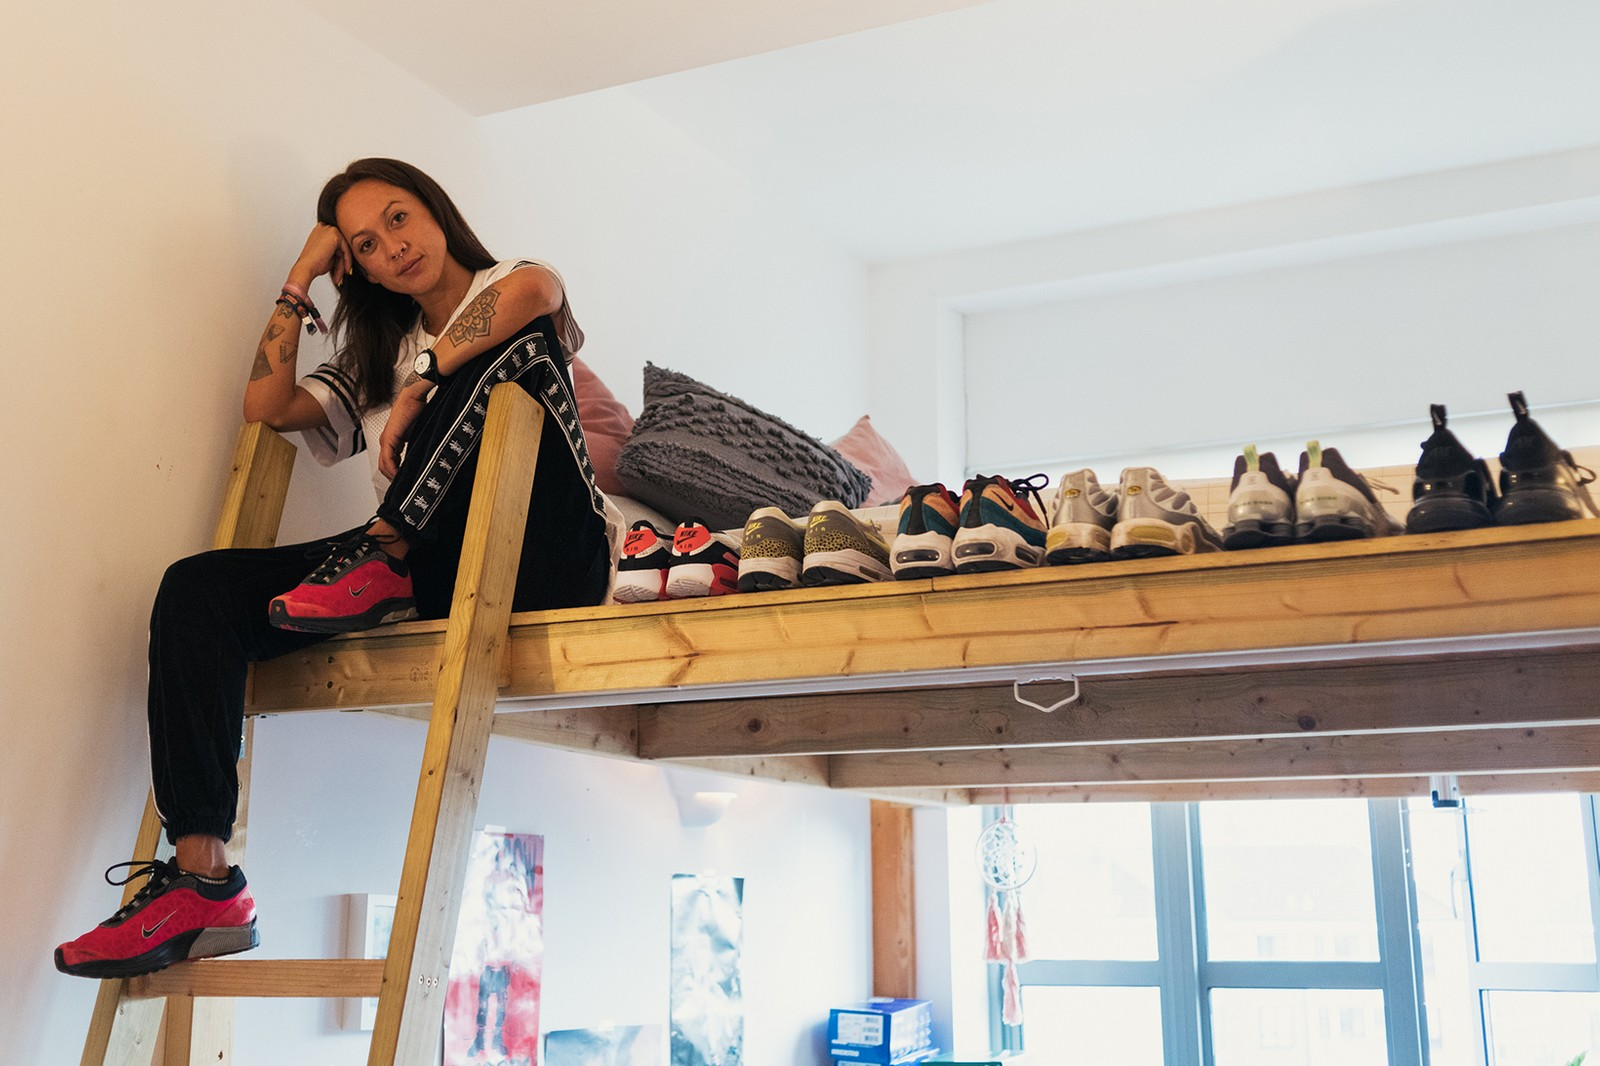 Jess Gavigan Juice Gee Female Sneaker Collector UK Interview @juicegee Sneakerhead